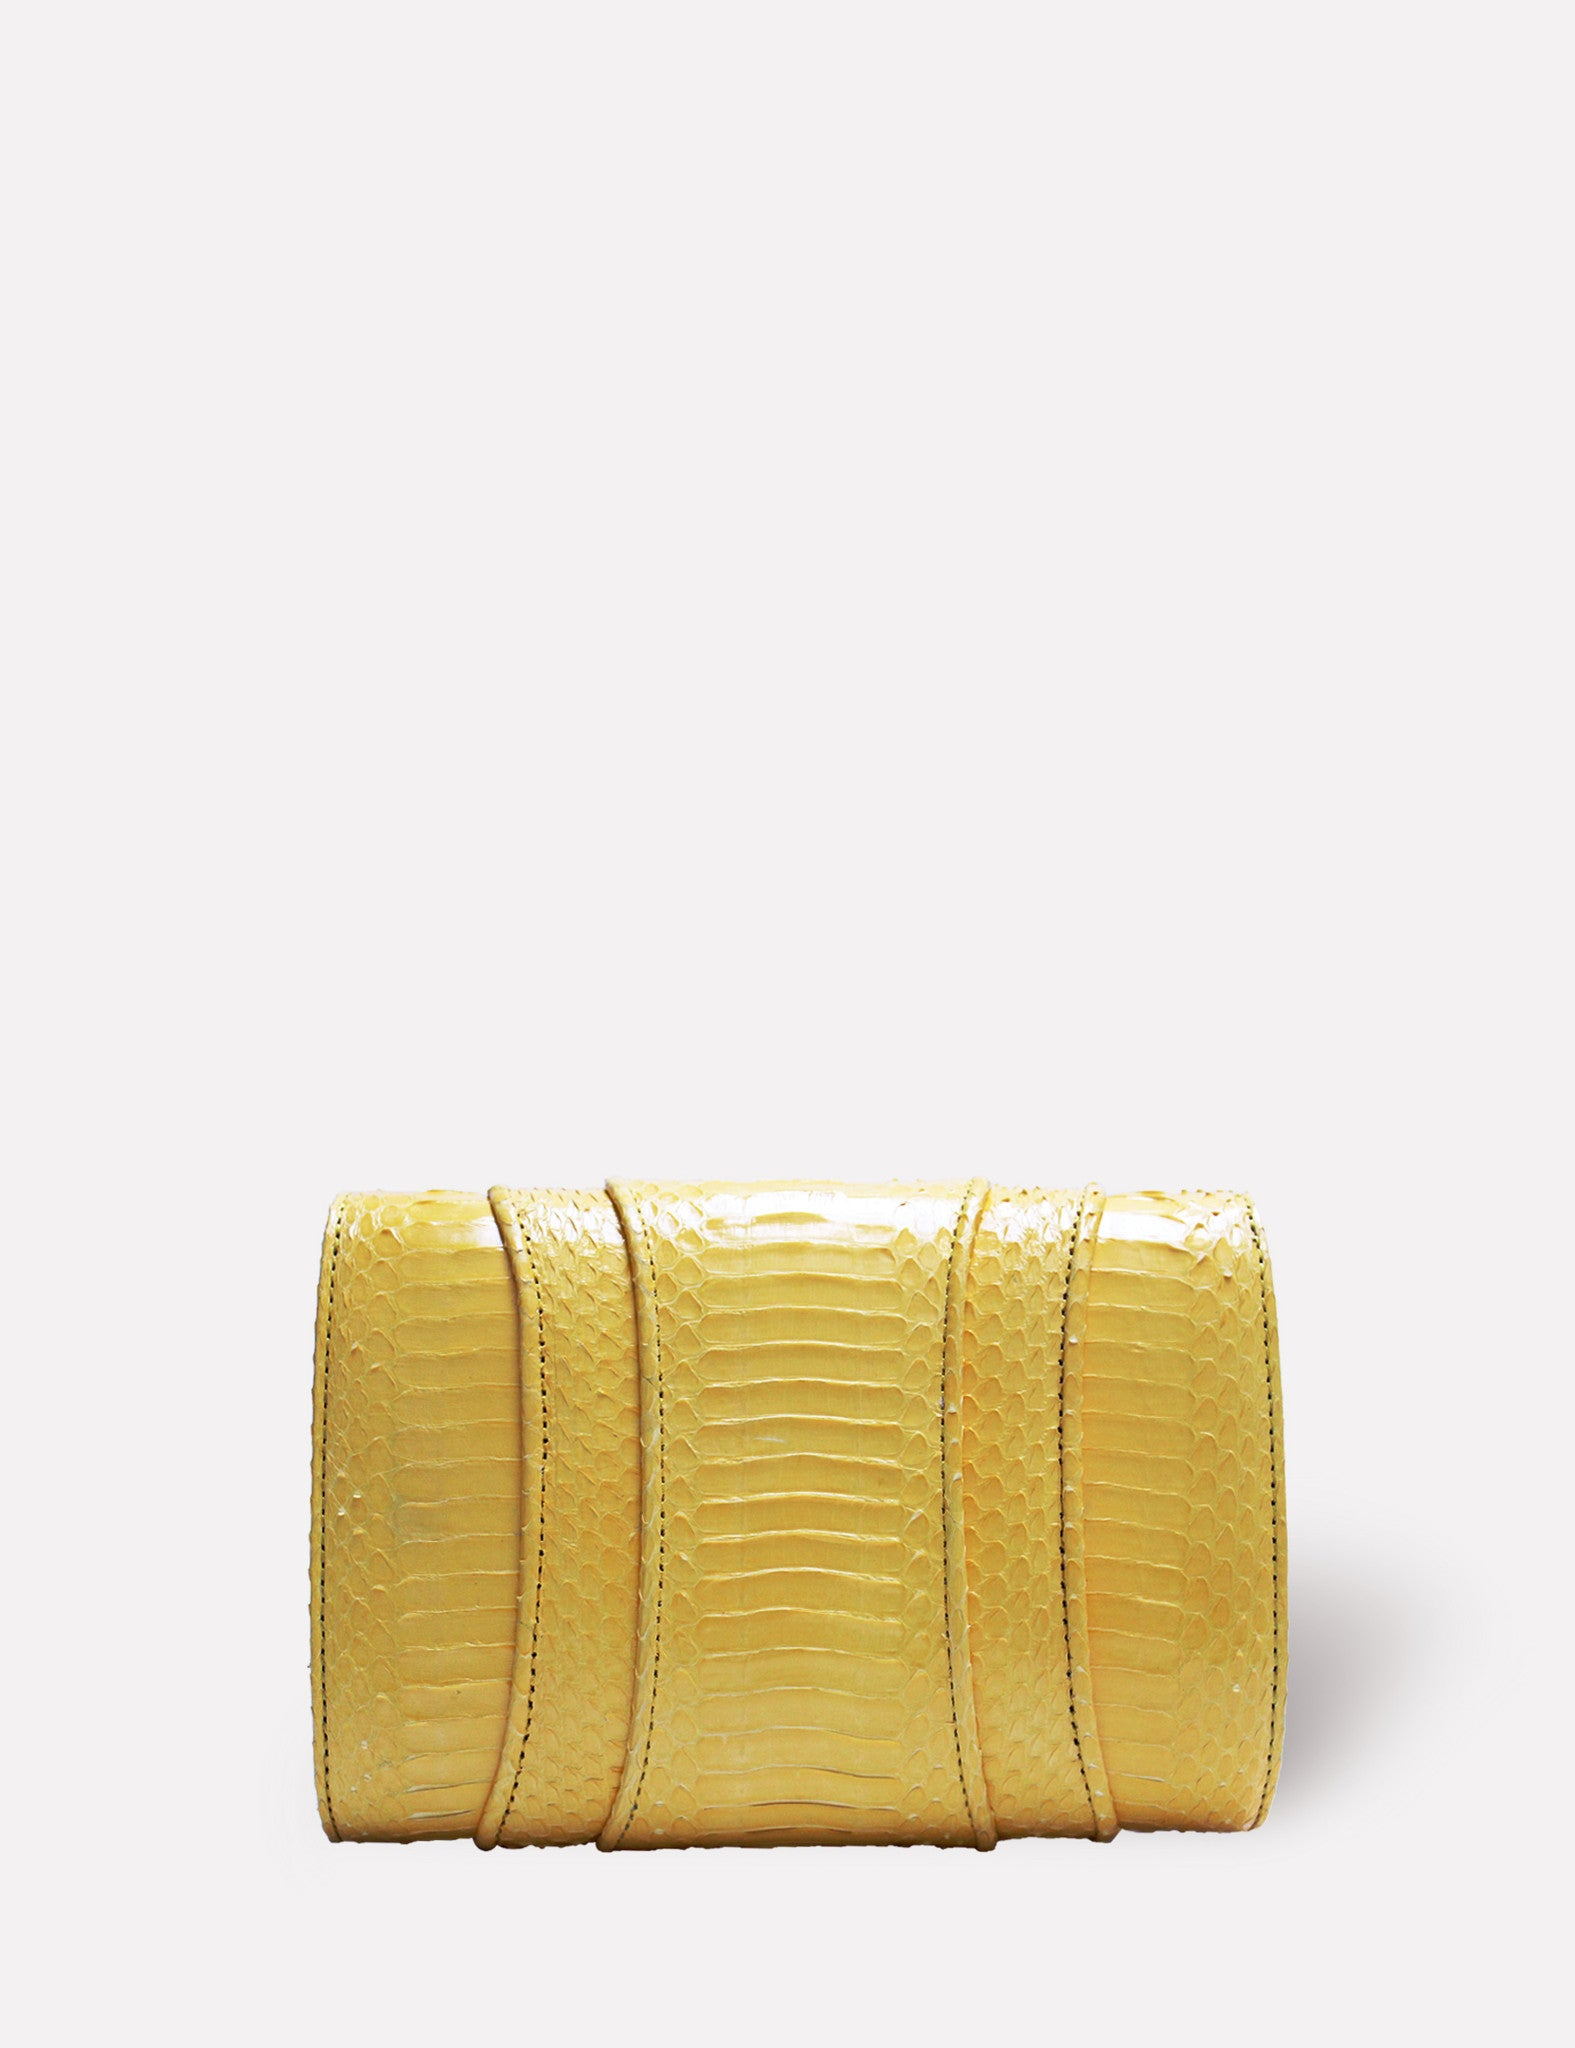 Khirma New York Unique Luxury Designer Exotic Skin Watersnake Clutch Purse. Removable chain for the perfect evening clutch in yellow. Can also be worn as a crossbody or shoulder bag